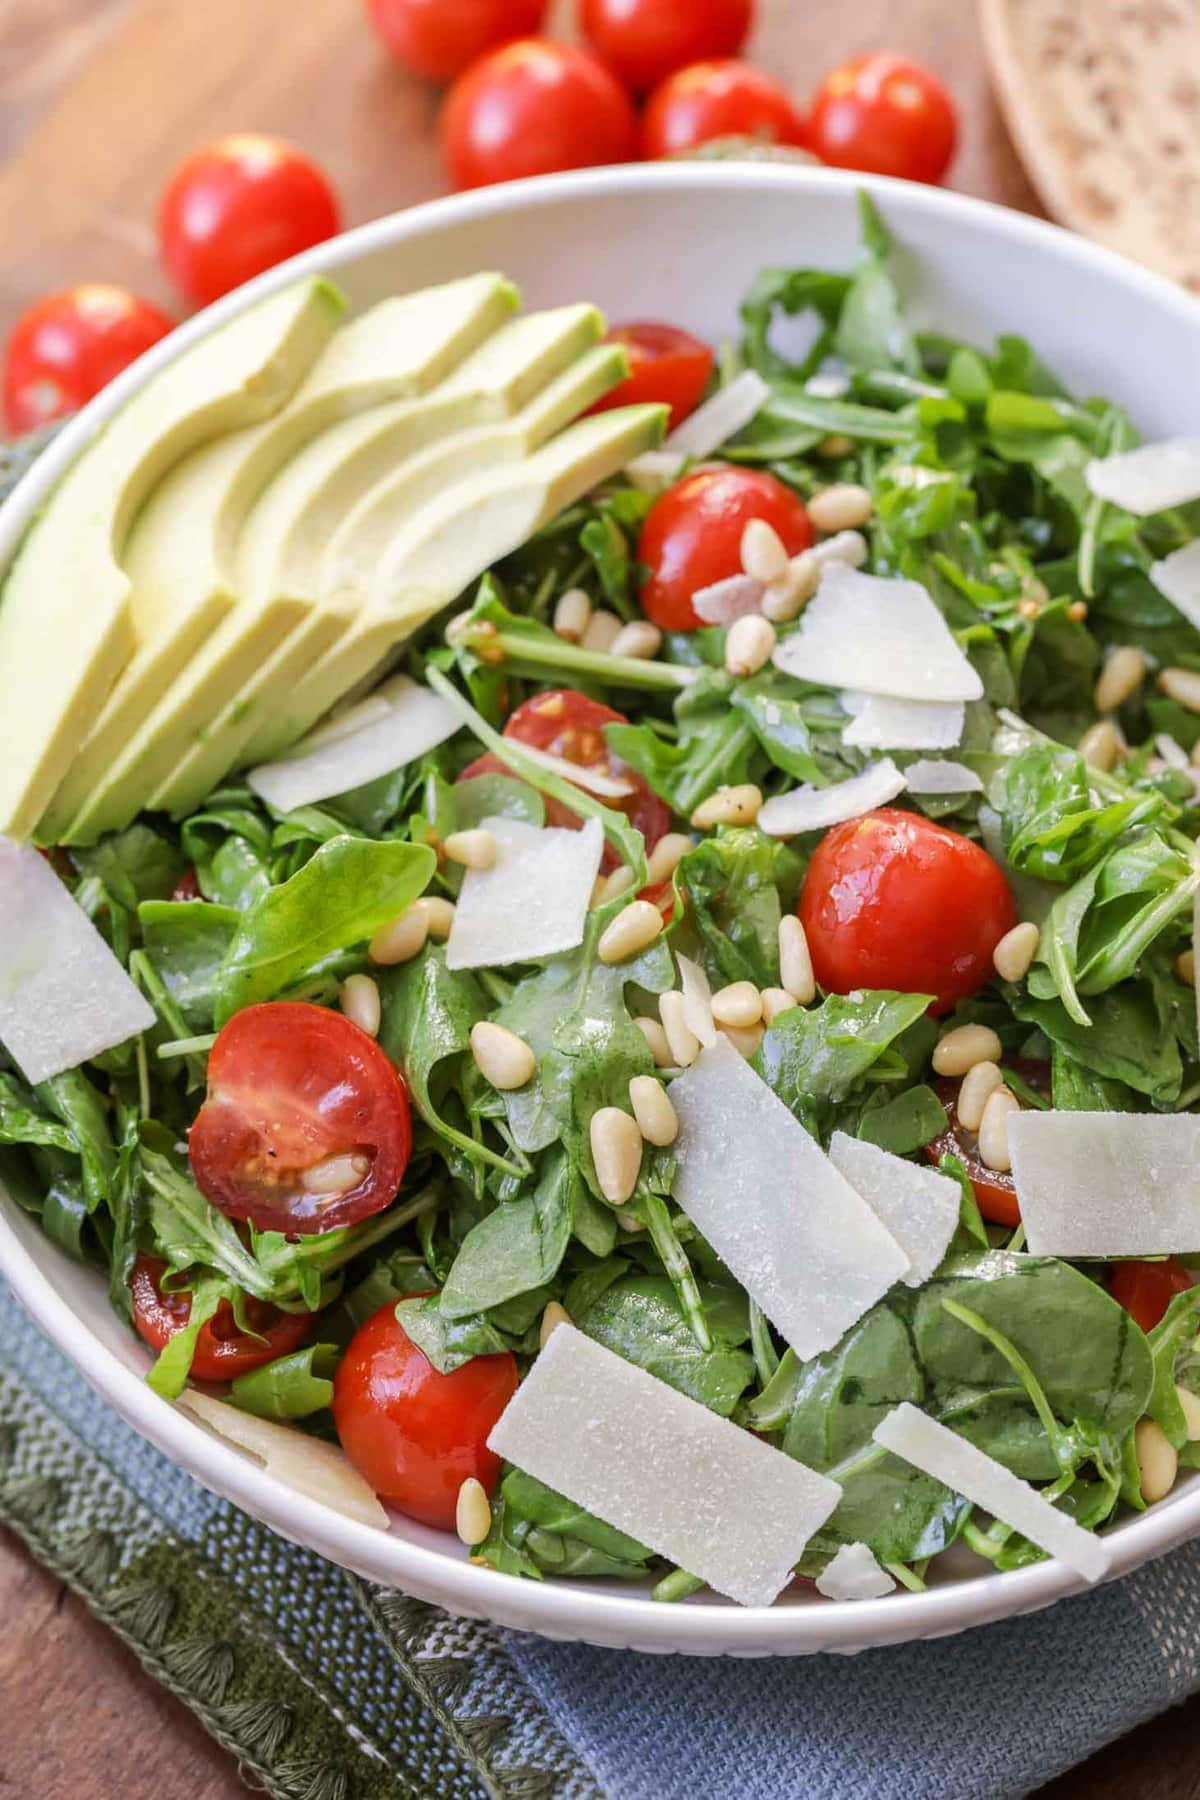 Simple Arugula Salad with Tomatoes and Pine Nuts | Lil' Luna